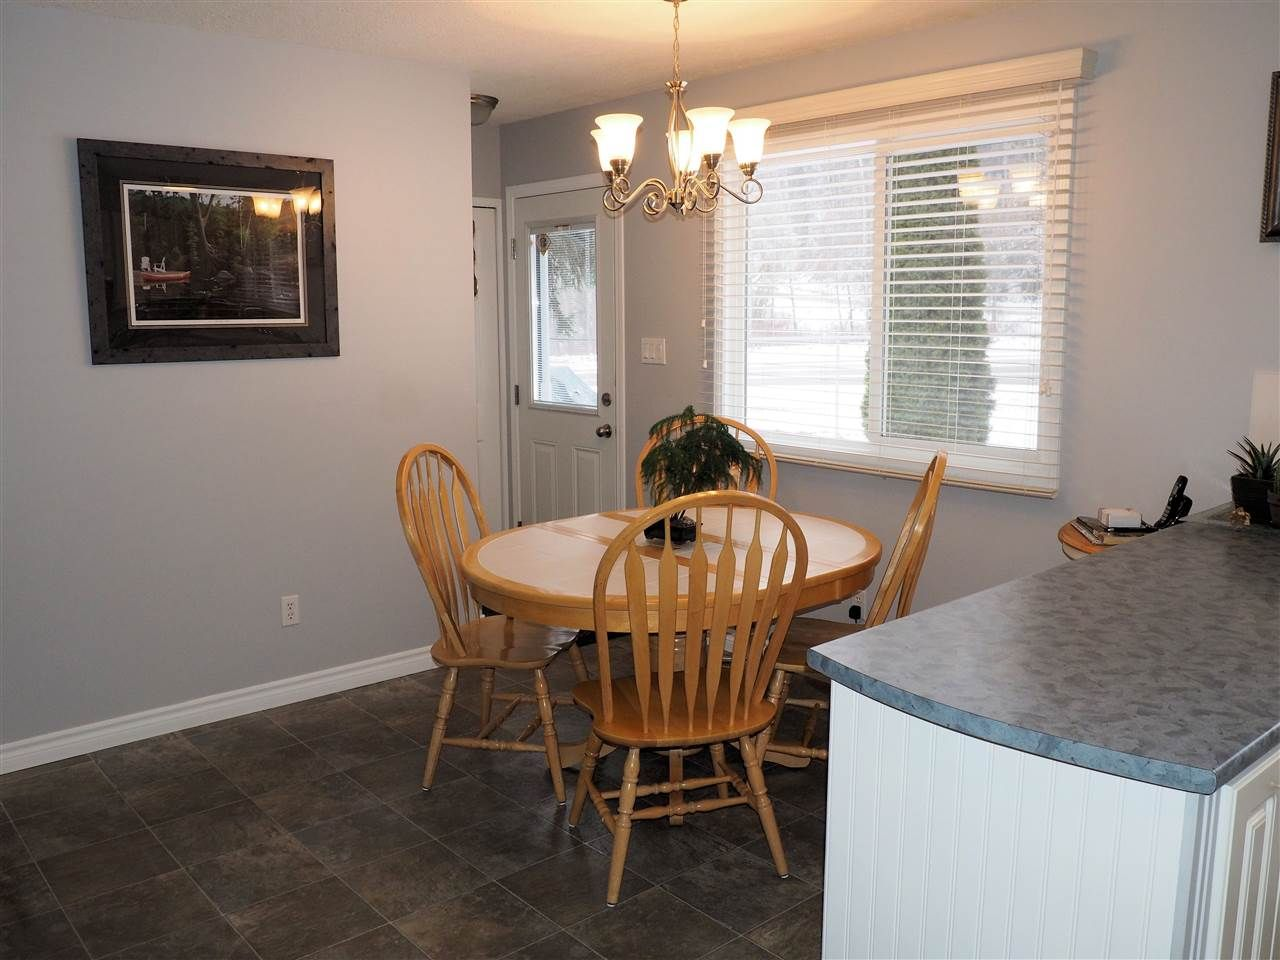 Photo 6: Photos: 4645 ROBSON Avenue in Prince George: Foothills House for sale (PG City West (Zone 71))  : MLS®# R2143048